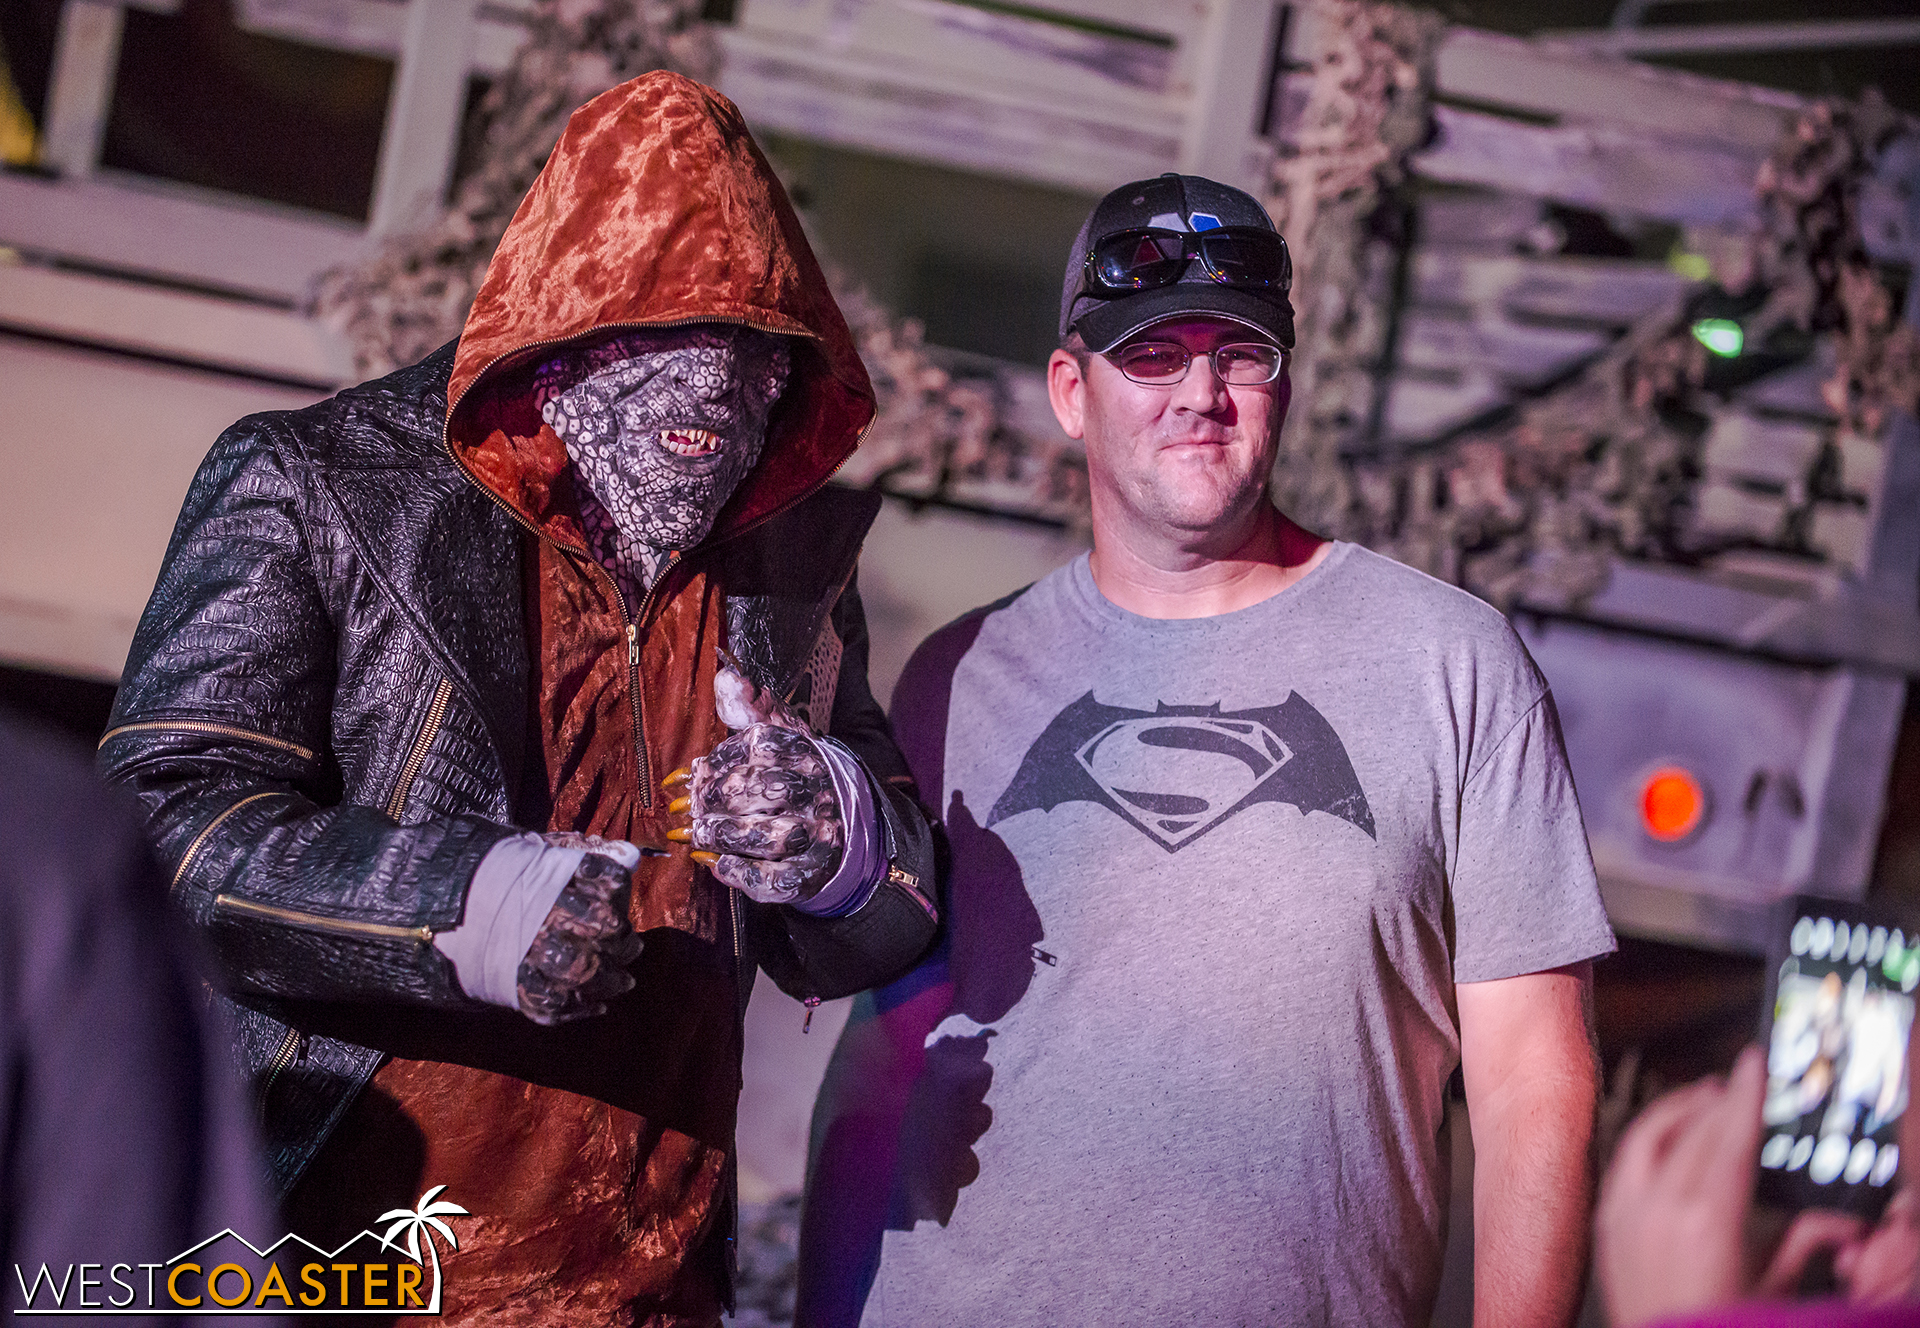 Around the corner, guests can interact with Killer Croc.